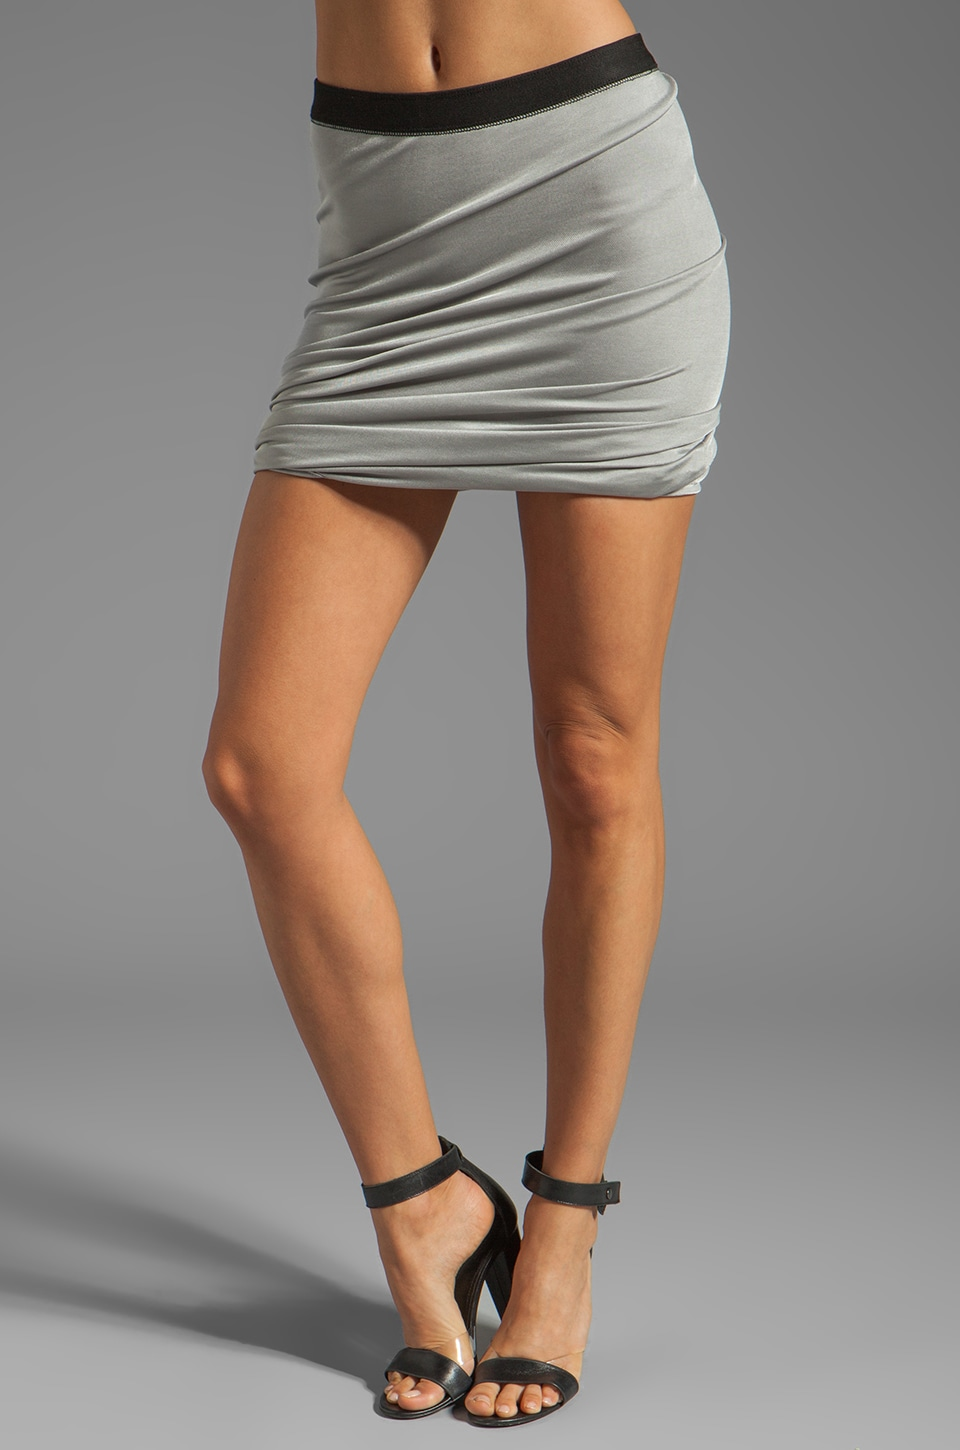 T by Alexander Wang Pique Shiny Knit Twist Skirt in Concrete